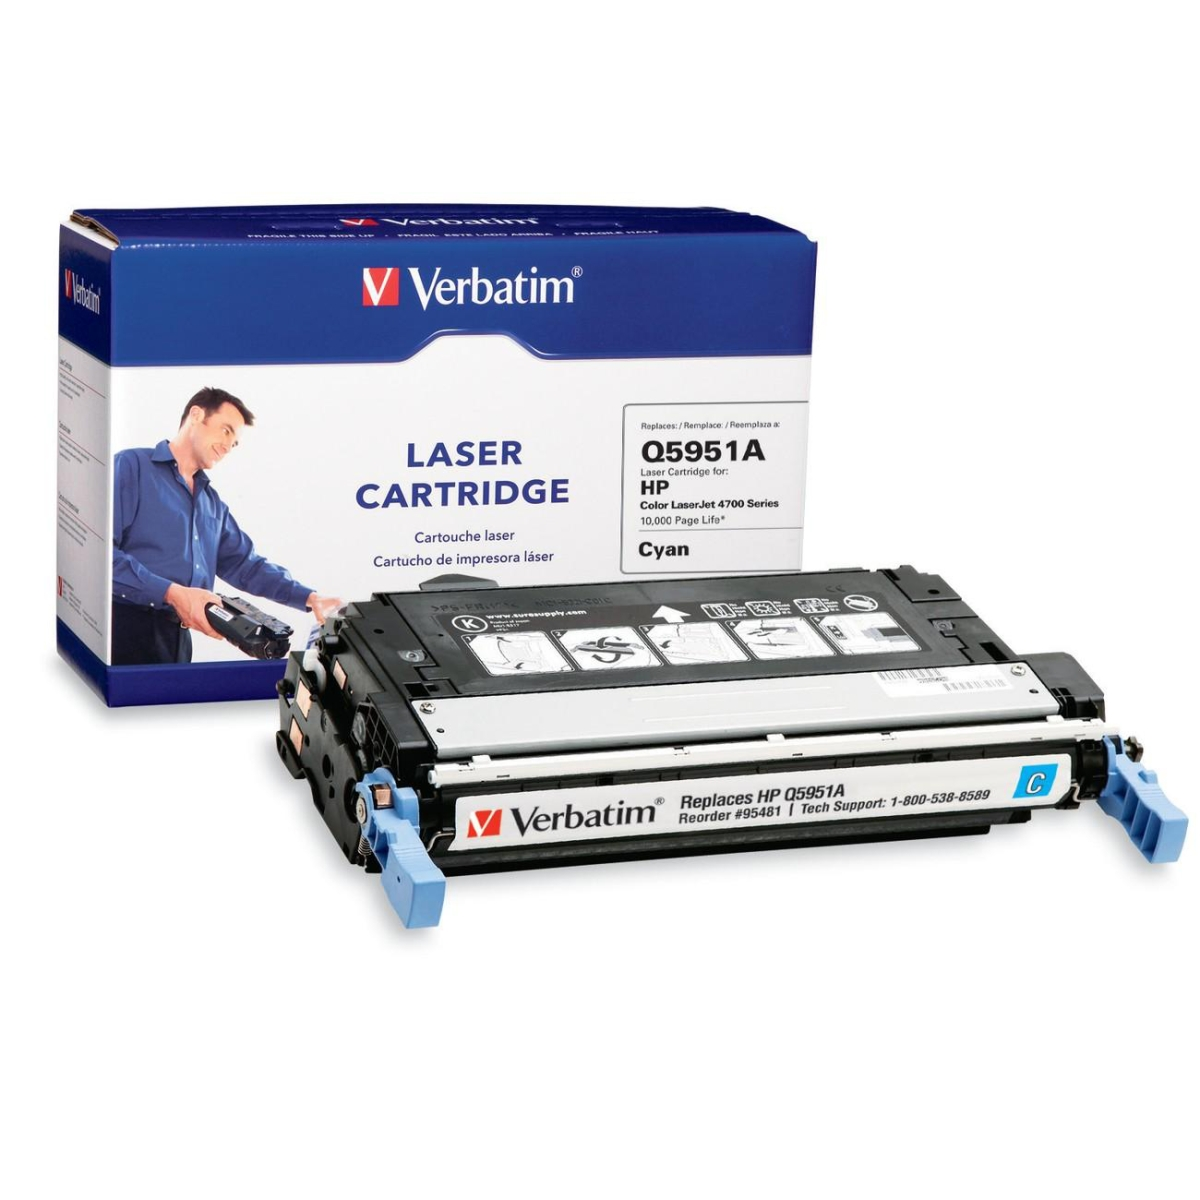 HP Q5951A Remanufactured Cyan Toner Cartridge for 4700 Series - Cyan - Laser - 10000 Page - OEM